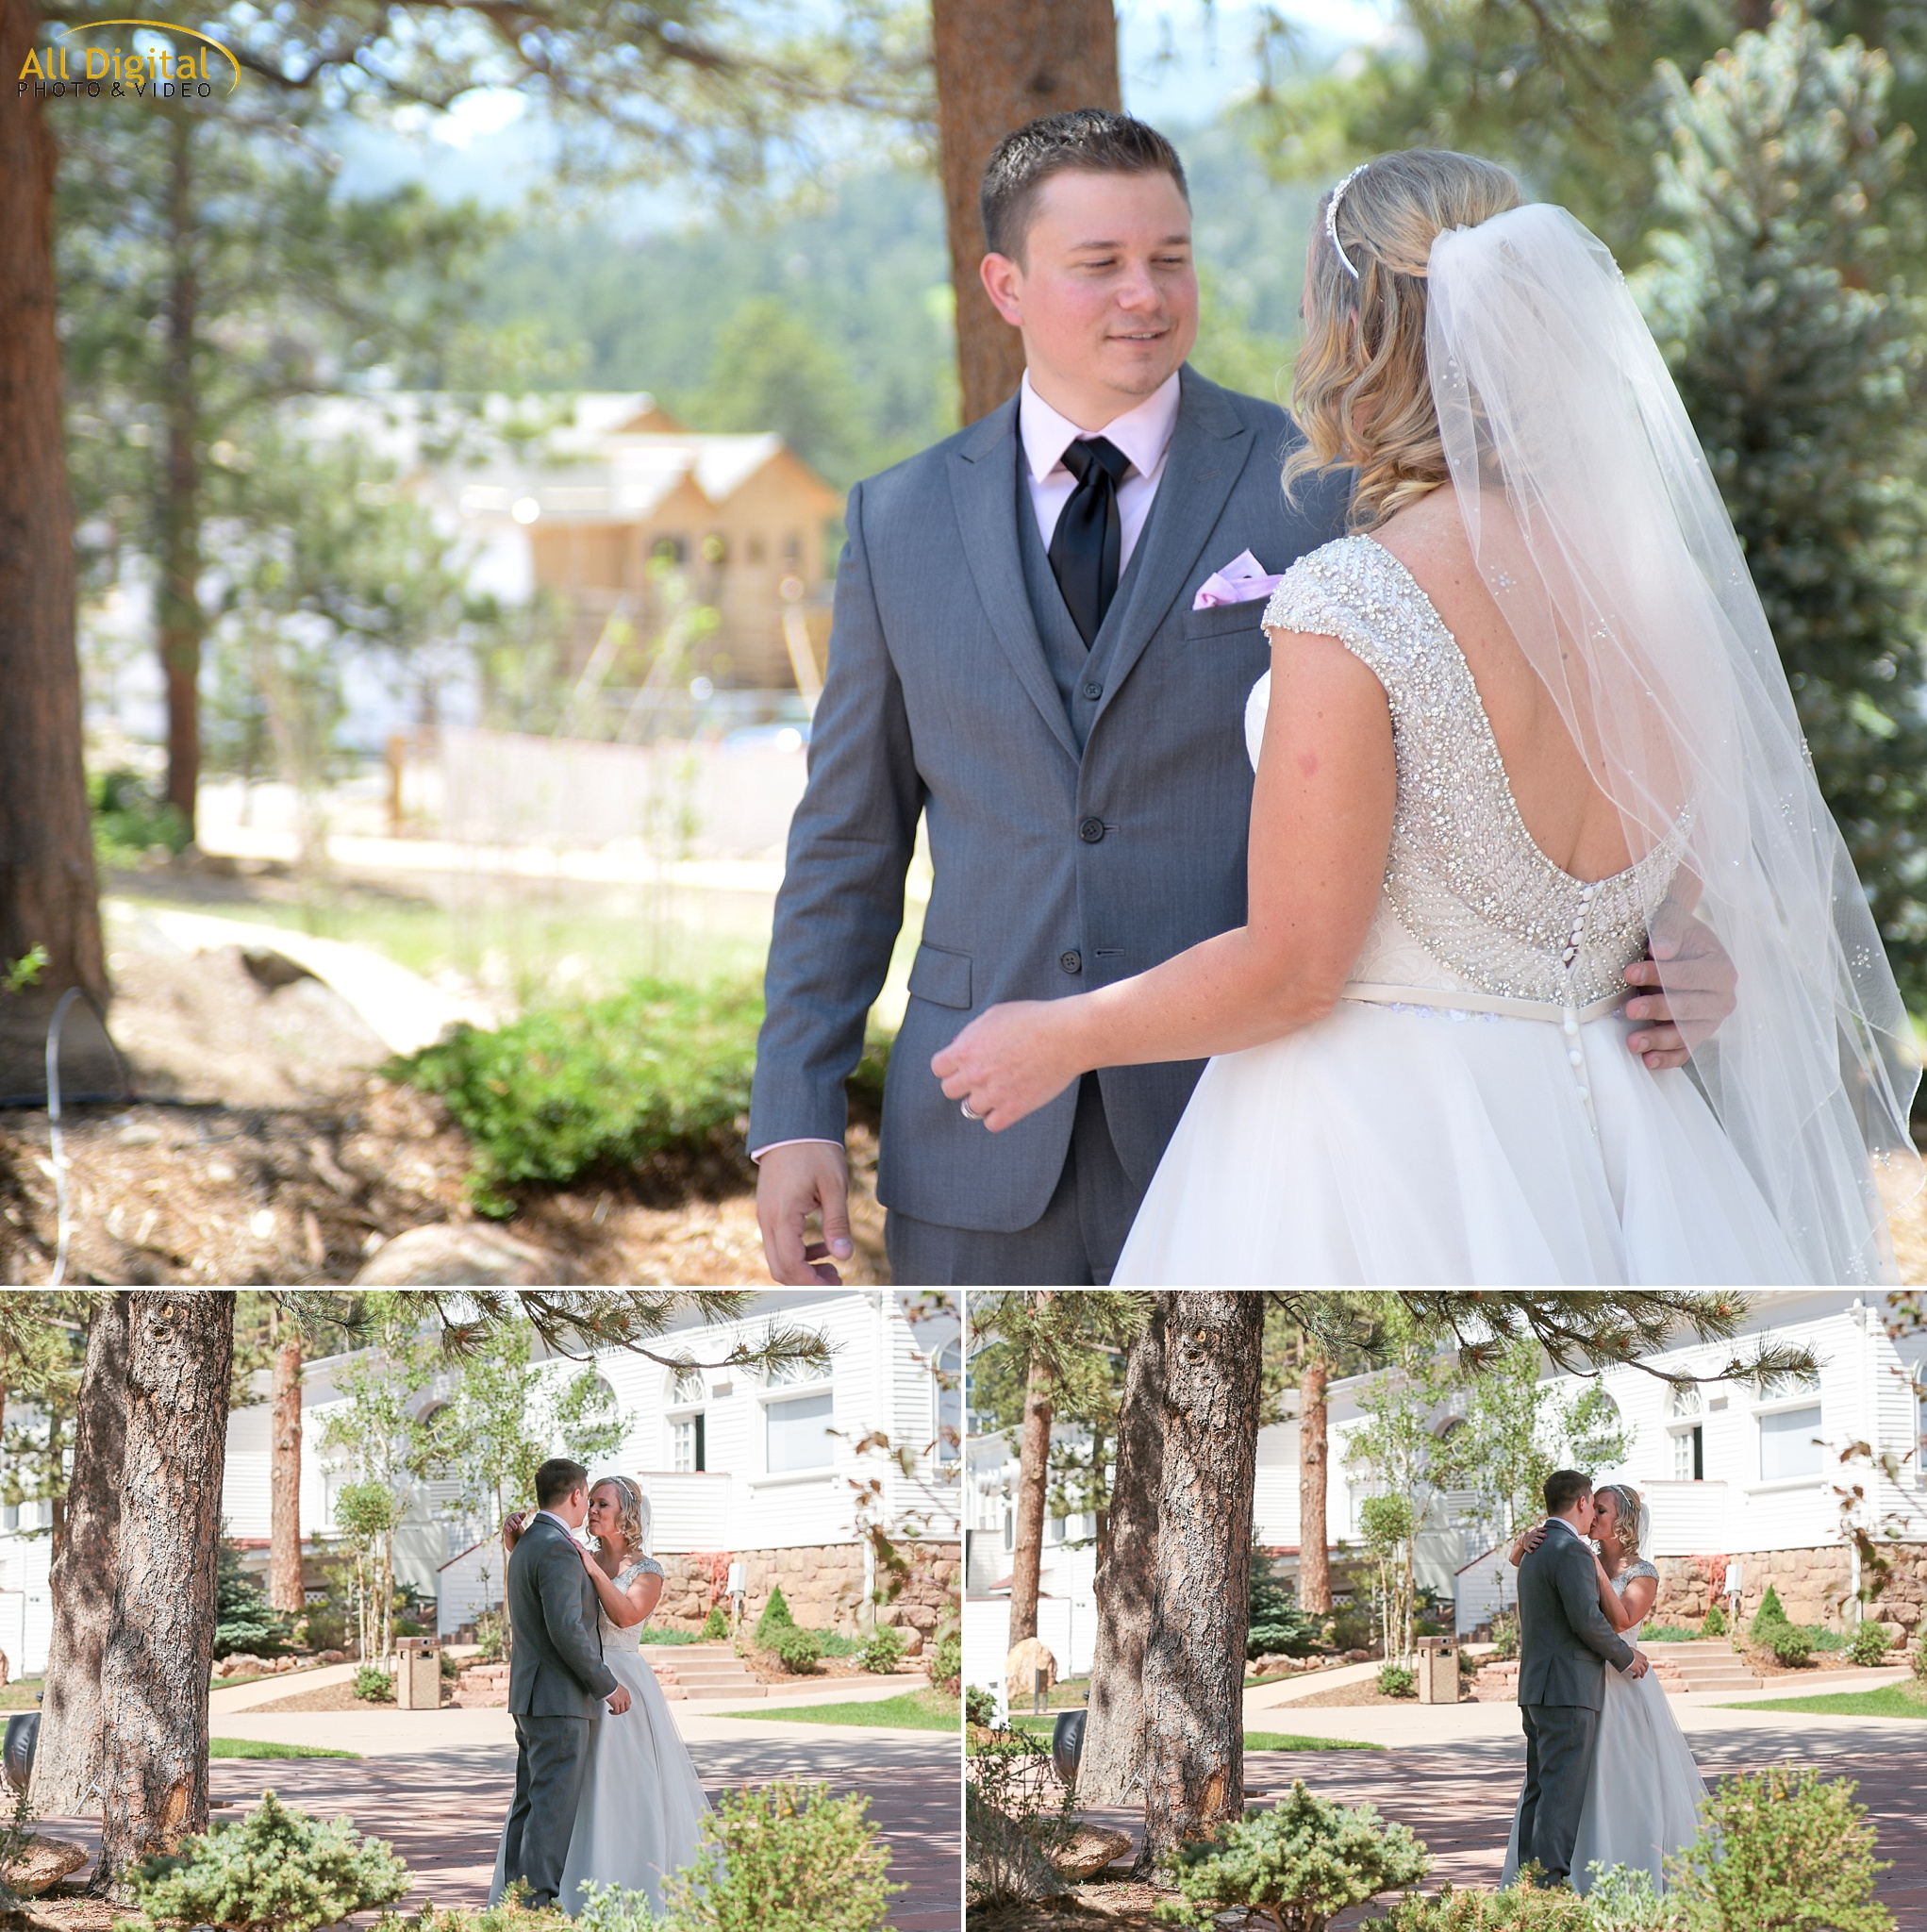 Alison & Brian's First Look at the Stanley Hotel in Estes Park, Colorado